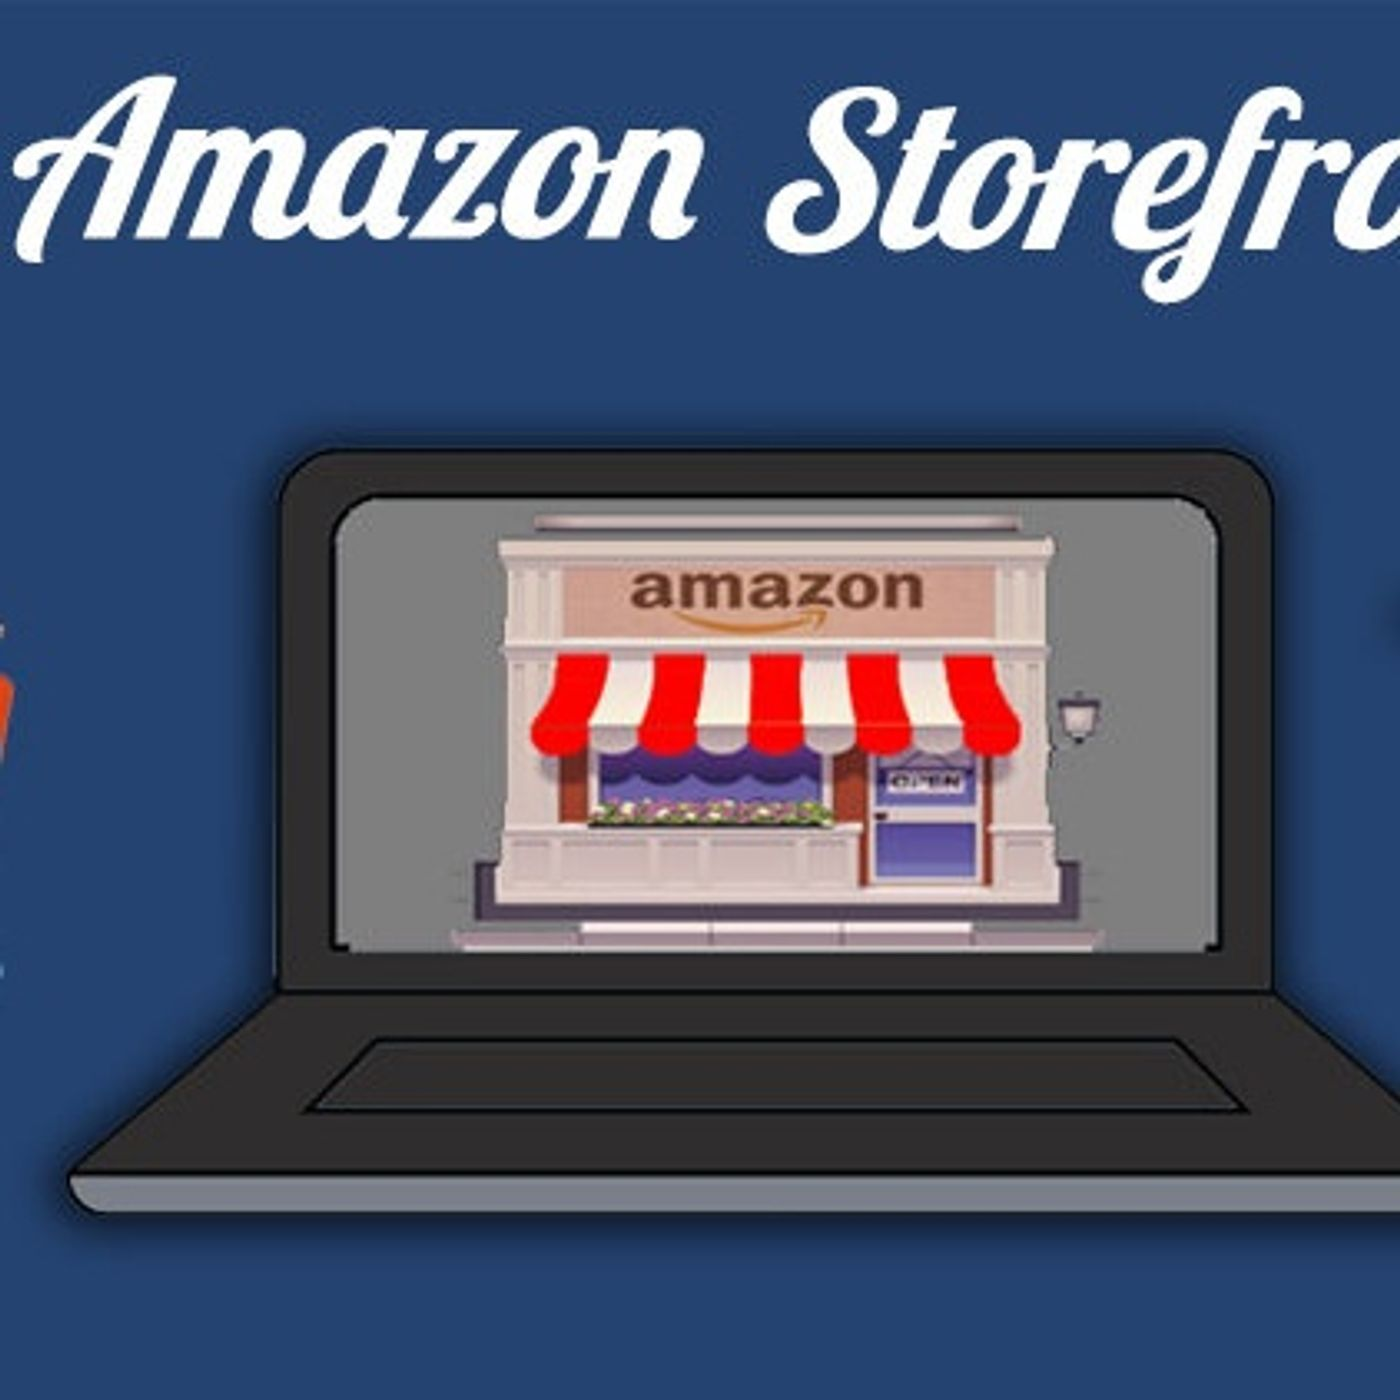 Amazon Storefronts, Shop Exclusively from U.S. Small Businesses Interview with Gene Marks on Georgia Business Radio